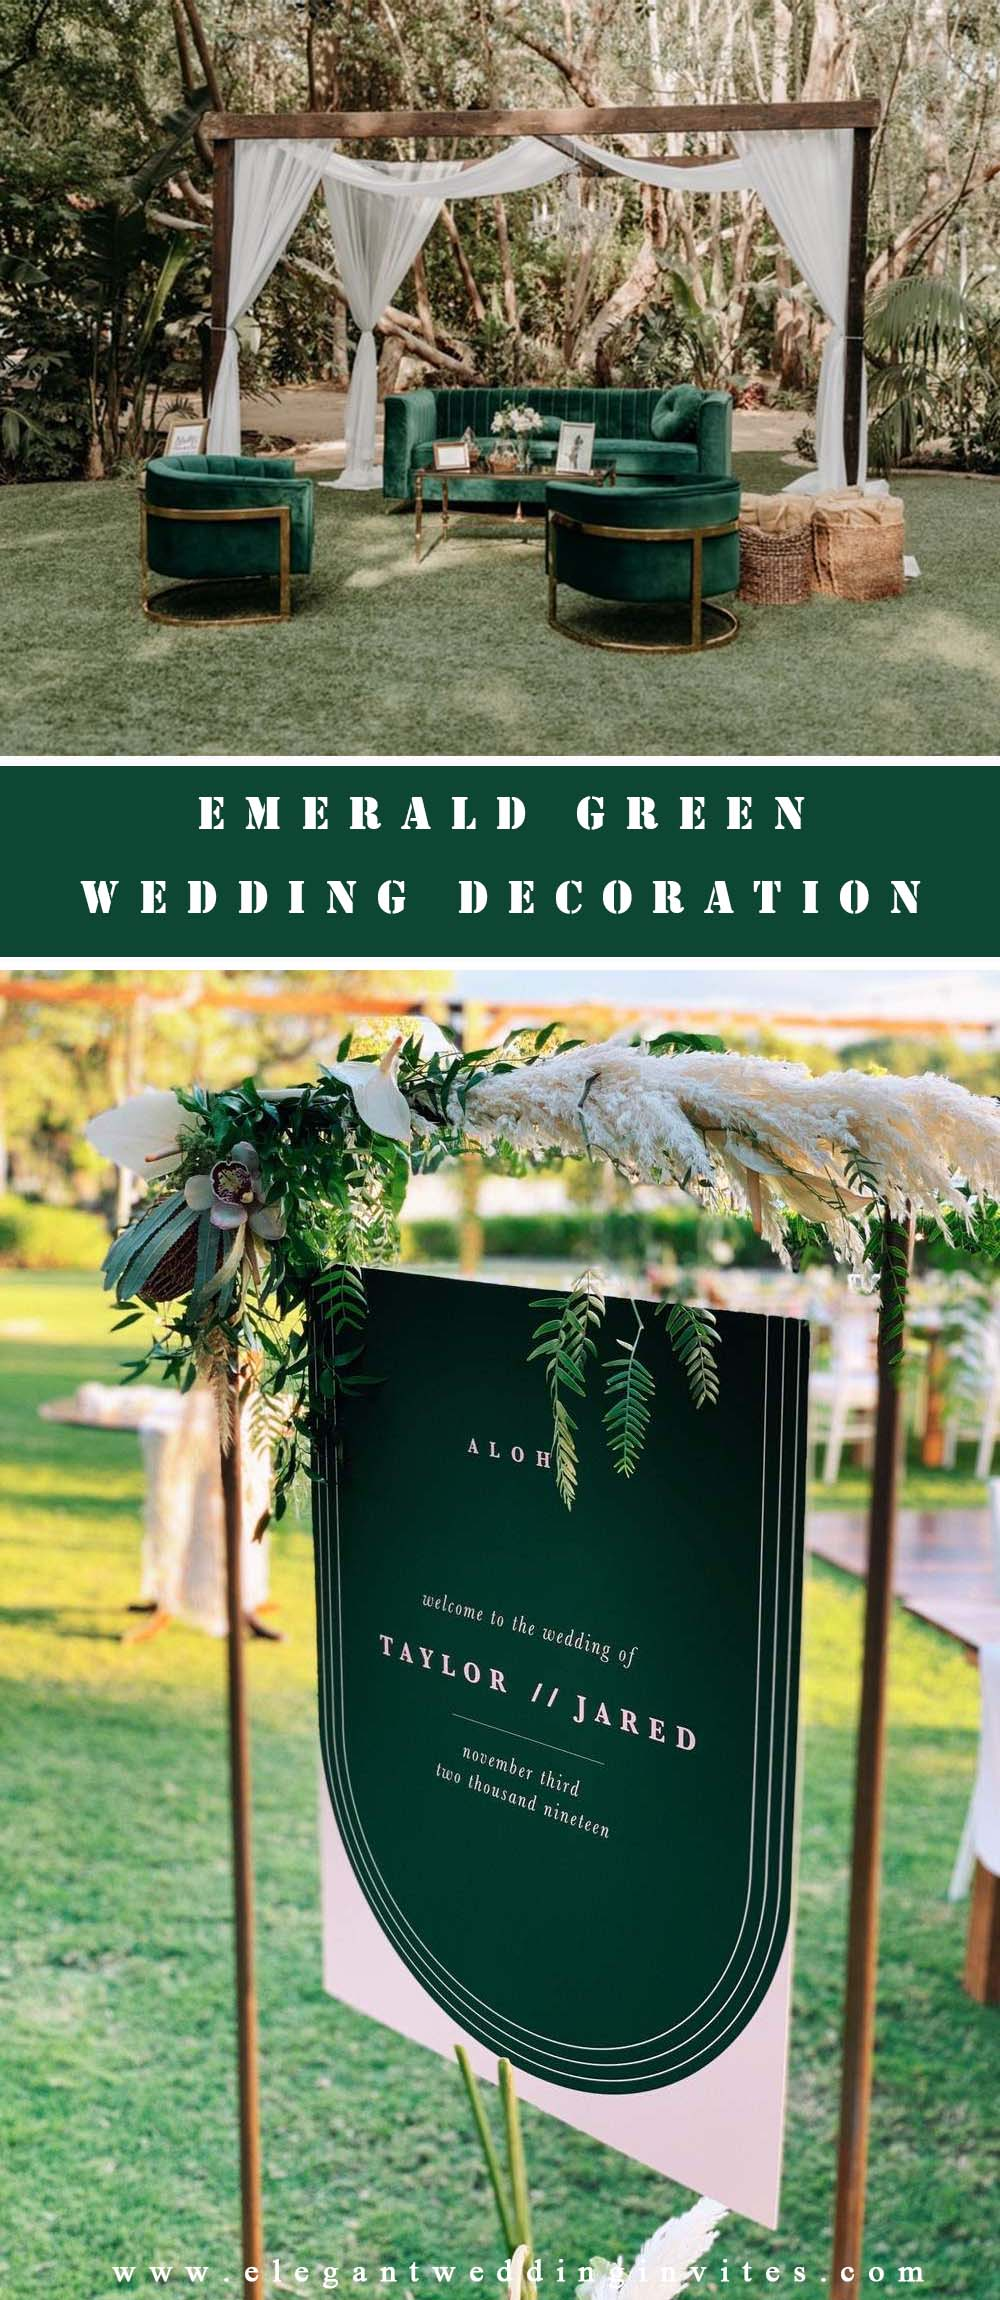 Popular Wedding Decoration Ideas with Emerald Green color